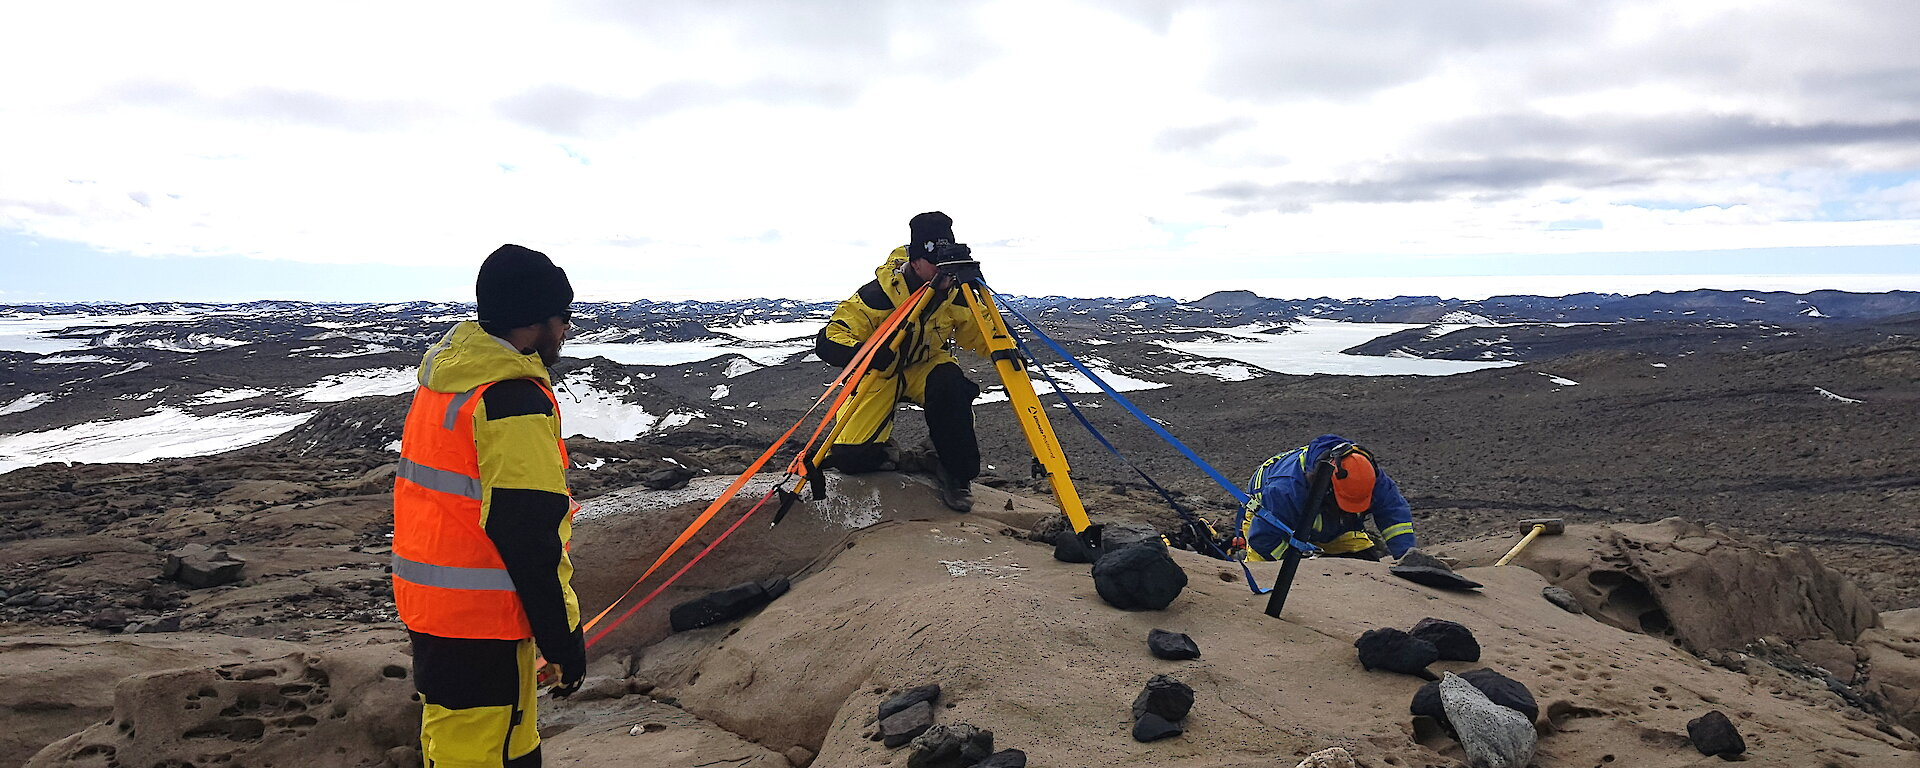 3 people with surveying equipment in a rocky landscape.